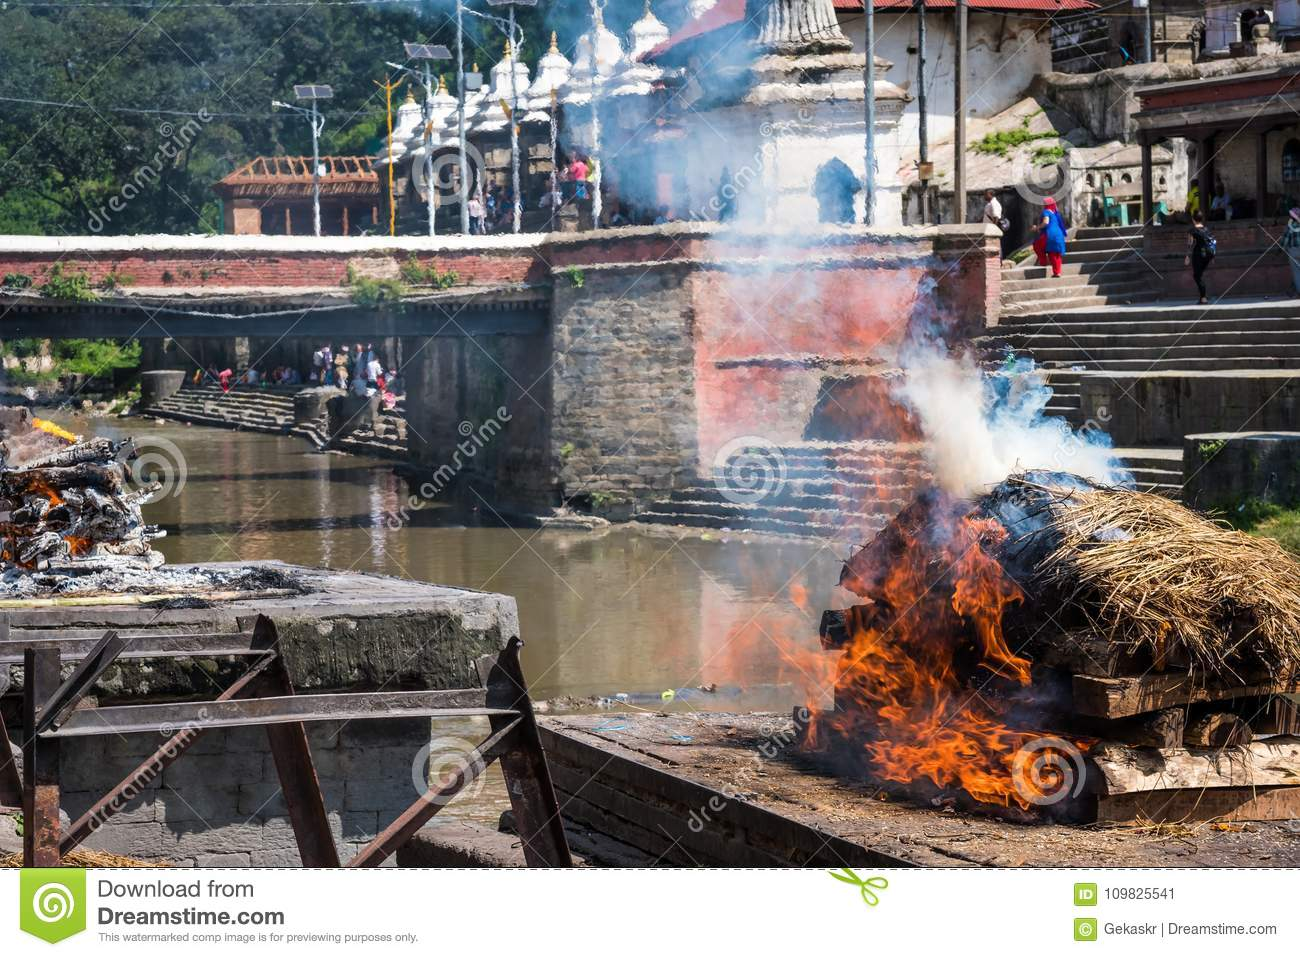 Pashupatinath temple cremations on the Bagmati River